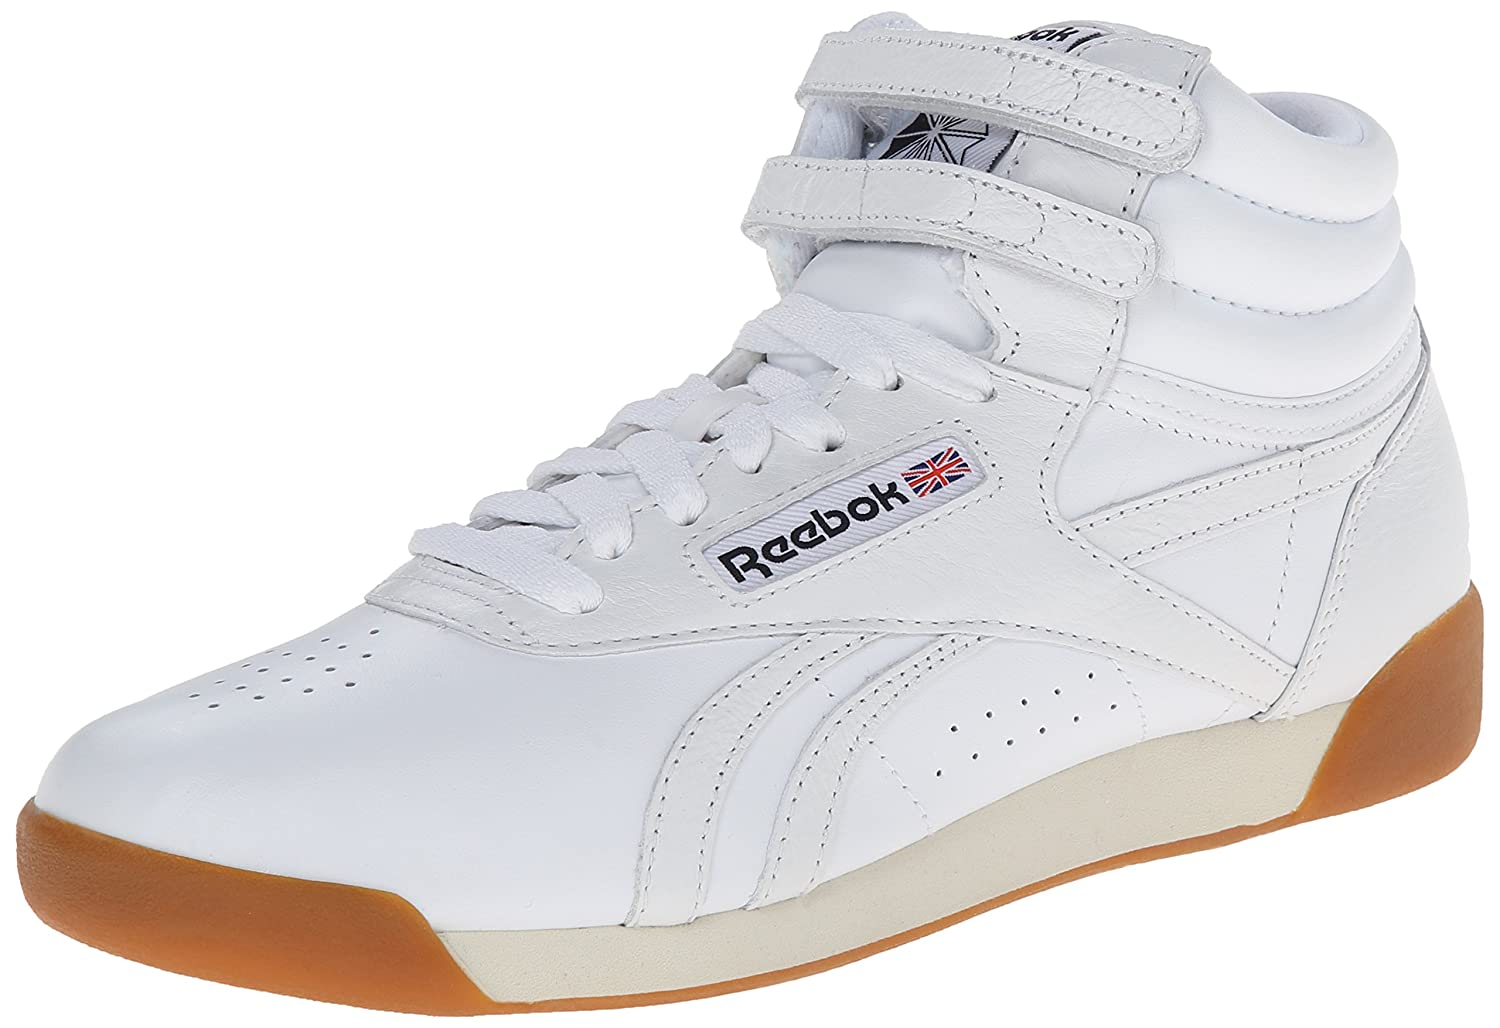 998a935bdb0cb old school high top reeboks cheap   OFF45% The Largest Catalog Discounts